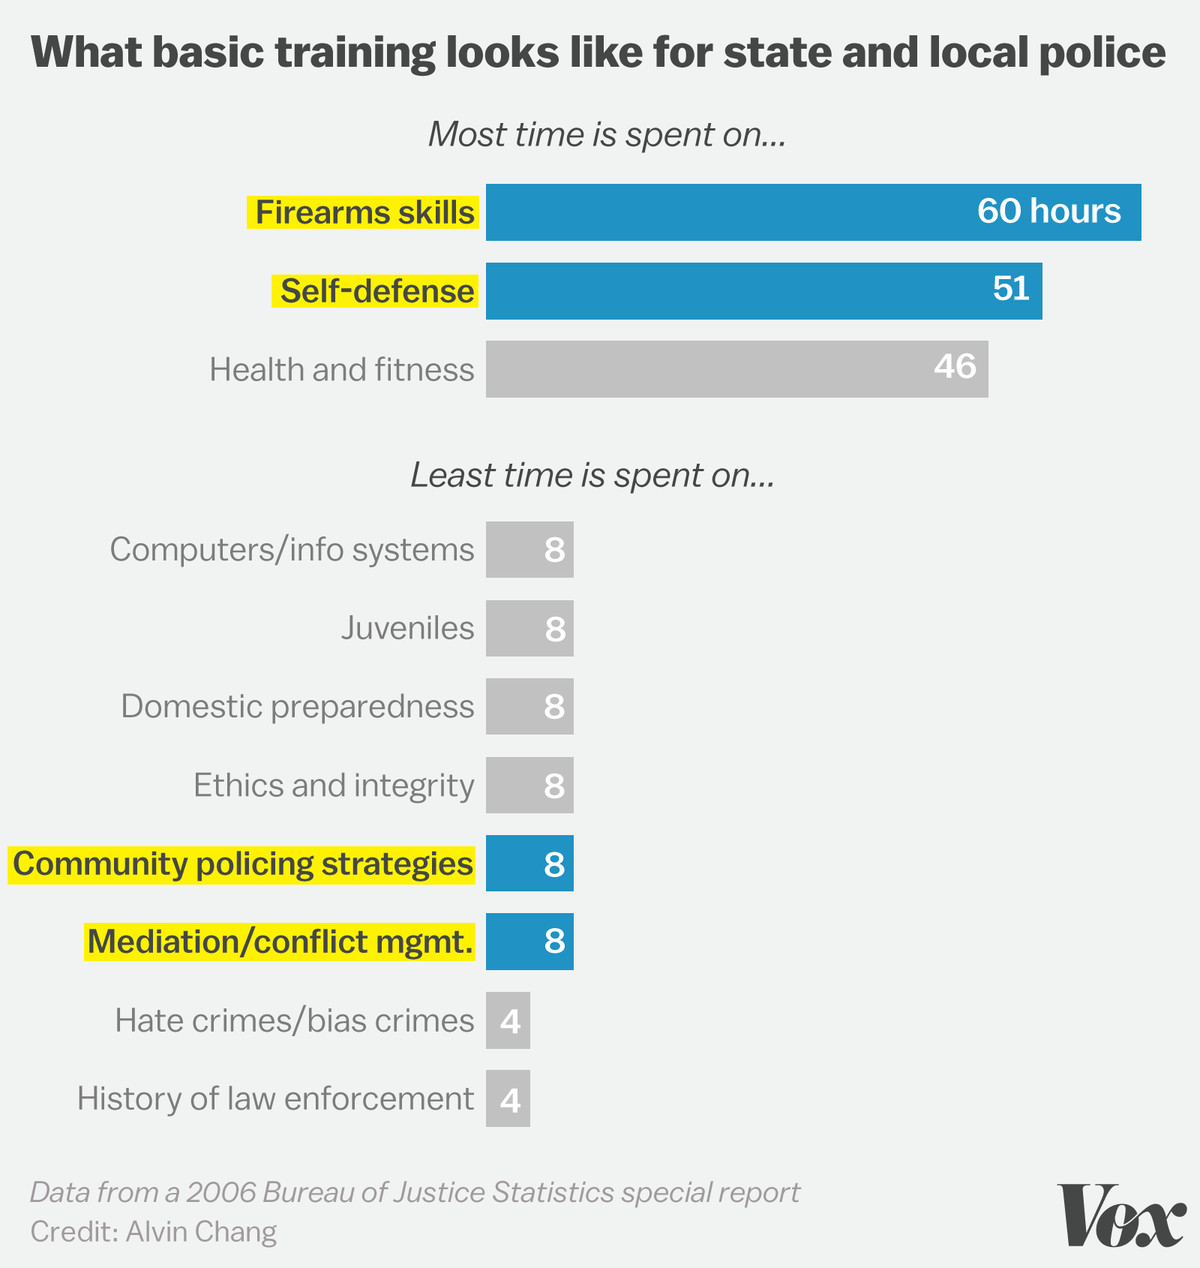 Police Academies Spend 110 Hours On Firearms And Self Defense They